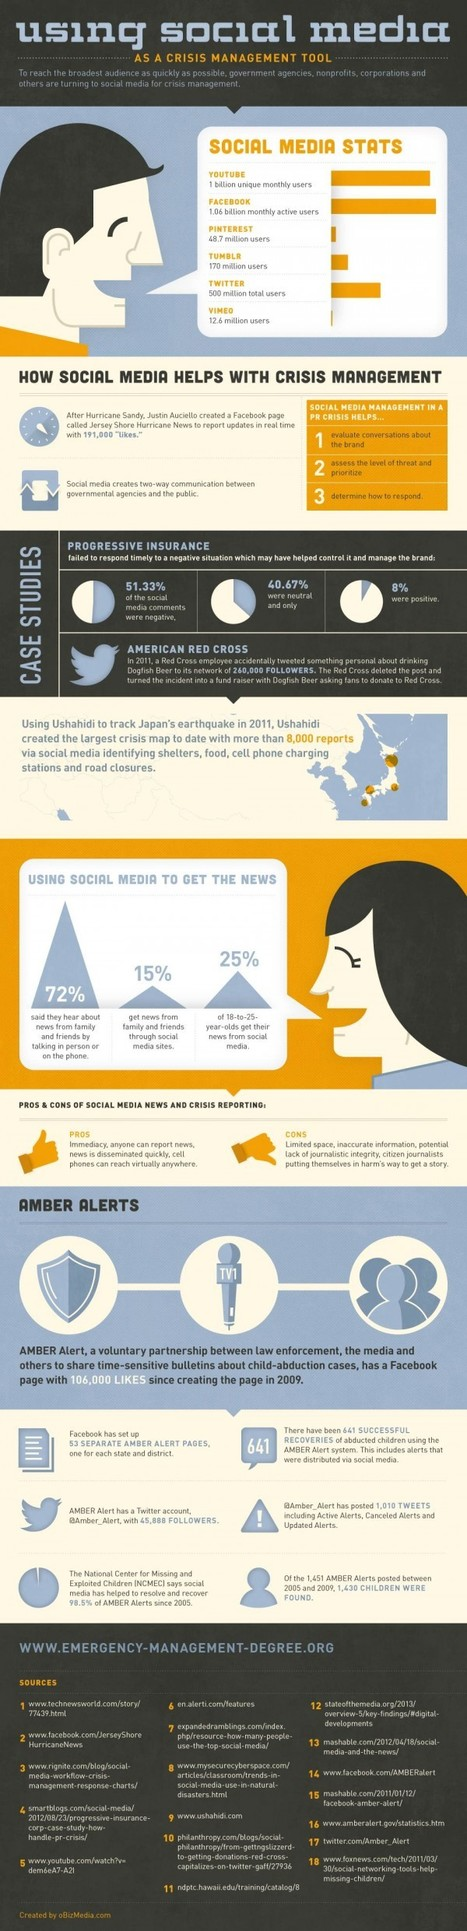 Using Social Media As A Crisis Management Tool [INFOGRAPHIC] - AllTwitter | Sports Facility Management.0195164 | Scoop.it